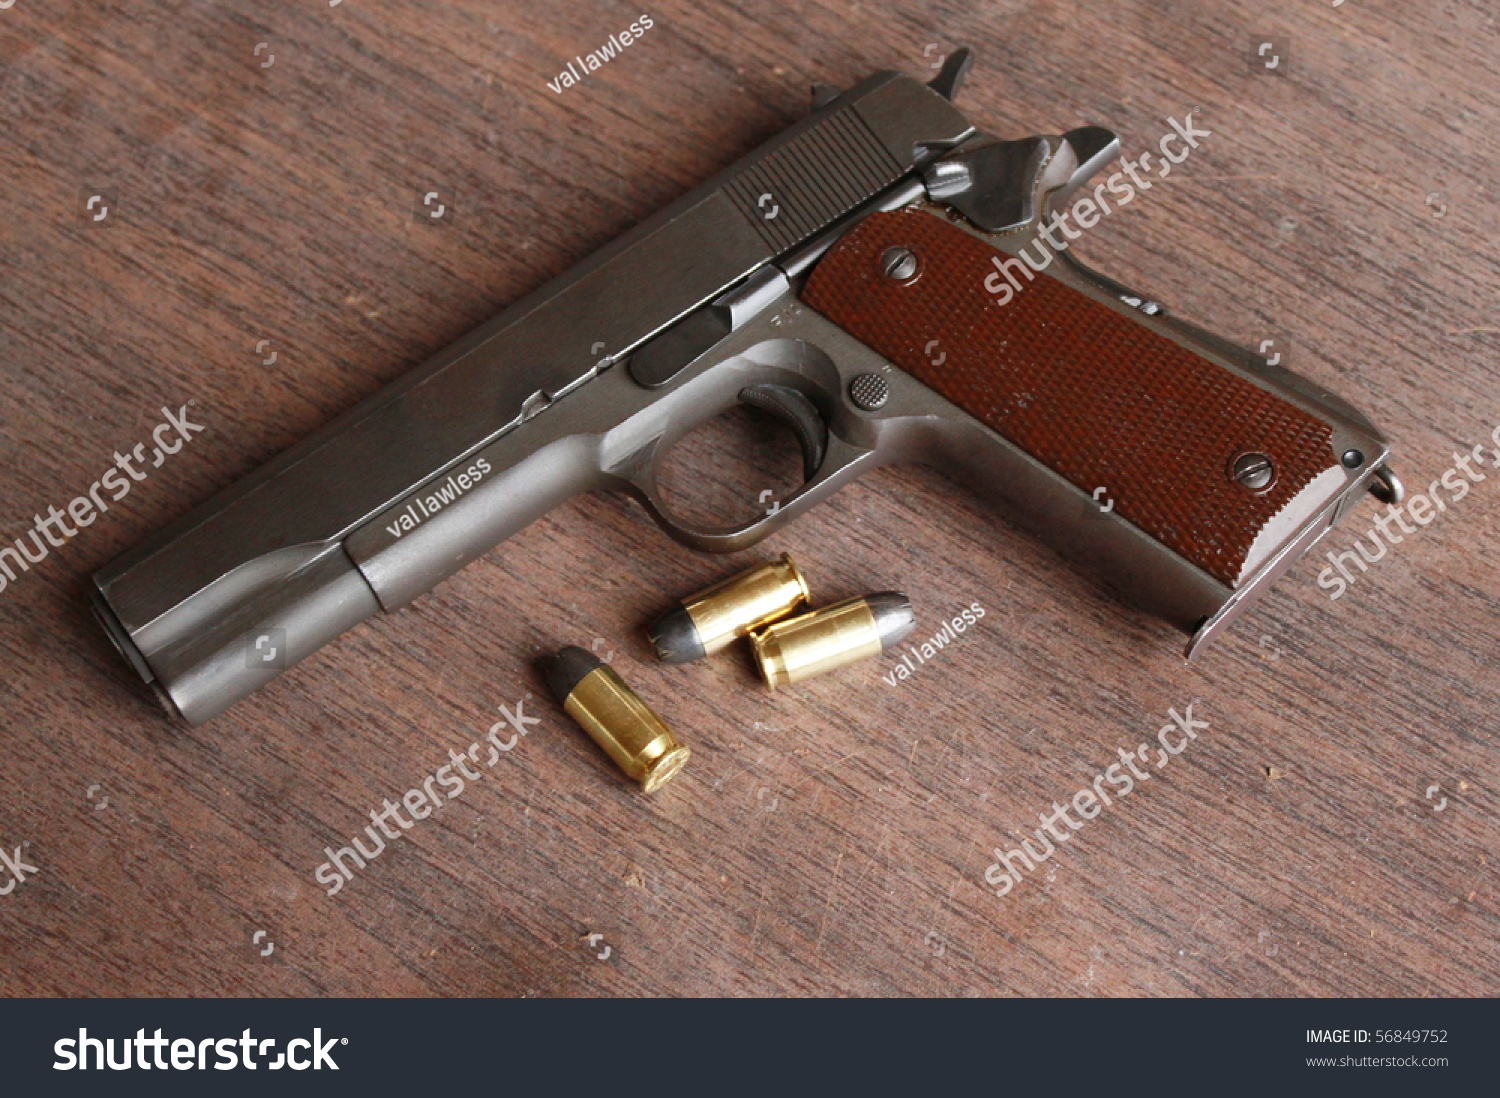 Gun And Bullets On A Table Stock Photo 56849752 : Shutterstock